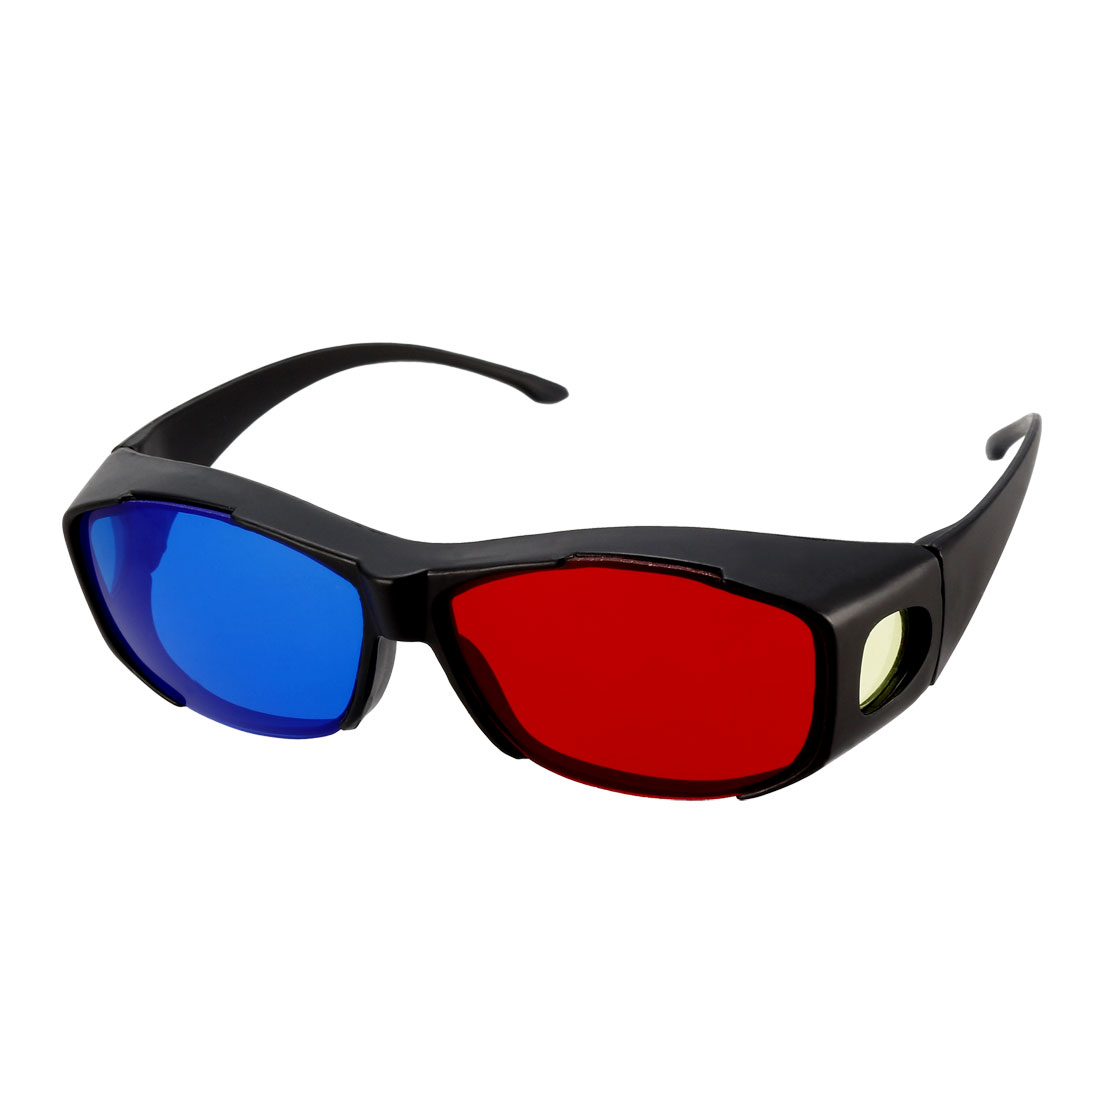 Red-Blue 3D Glasses 3D Visoin Glasses for Red-Blue Format Movie/Picture